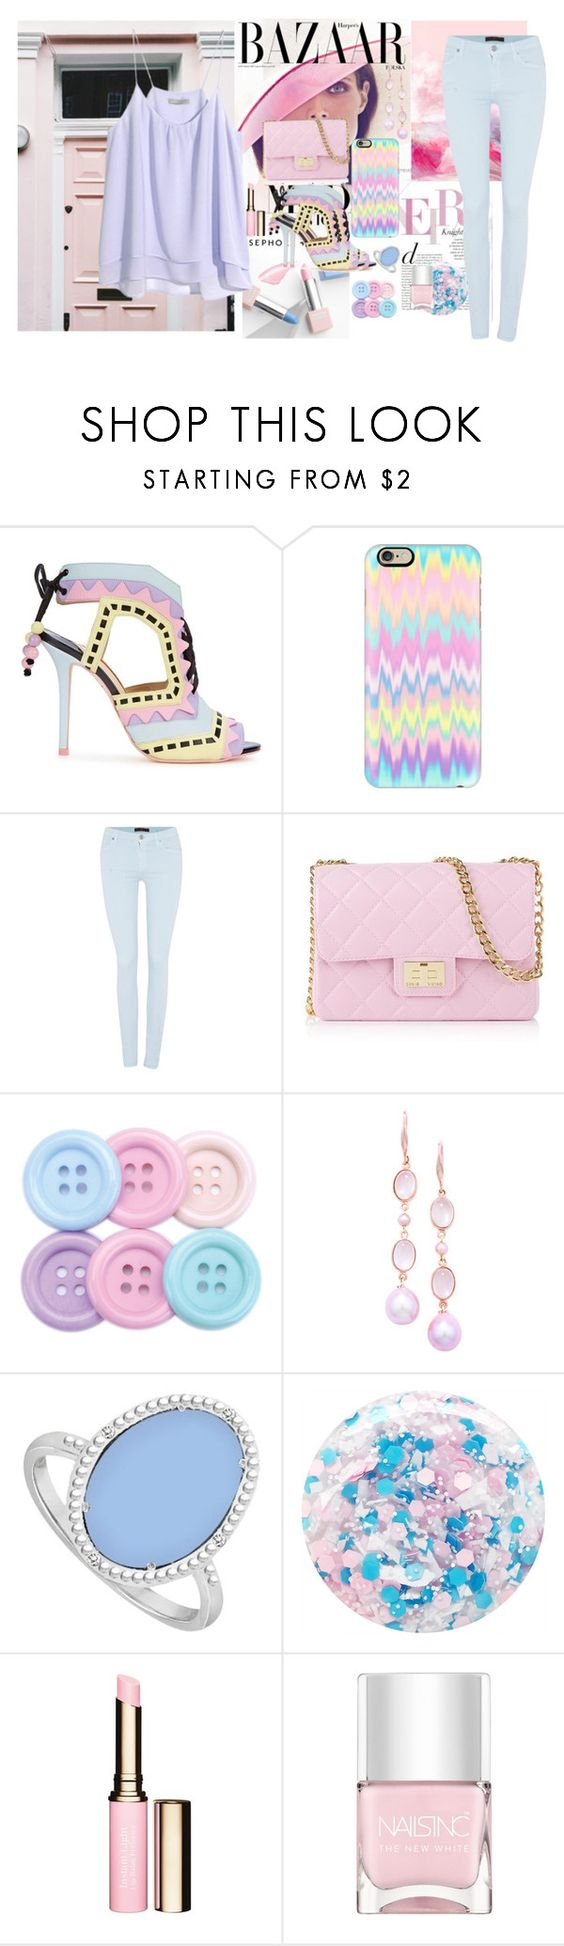 """""""Pastel perfection"""" by fantasticbabe ❤ liked on Polyvore featuring Bela, Sephora Collection, Sophia Webster, Casetify, 7 For All Mankind, H&M, Design Inverso, London Road, LoveBrightJewelry and Nails Inc."""